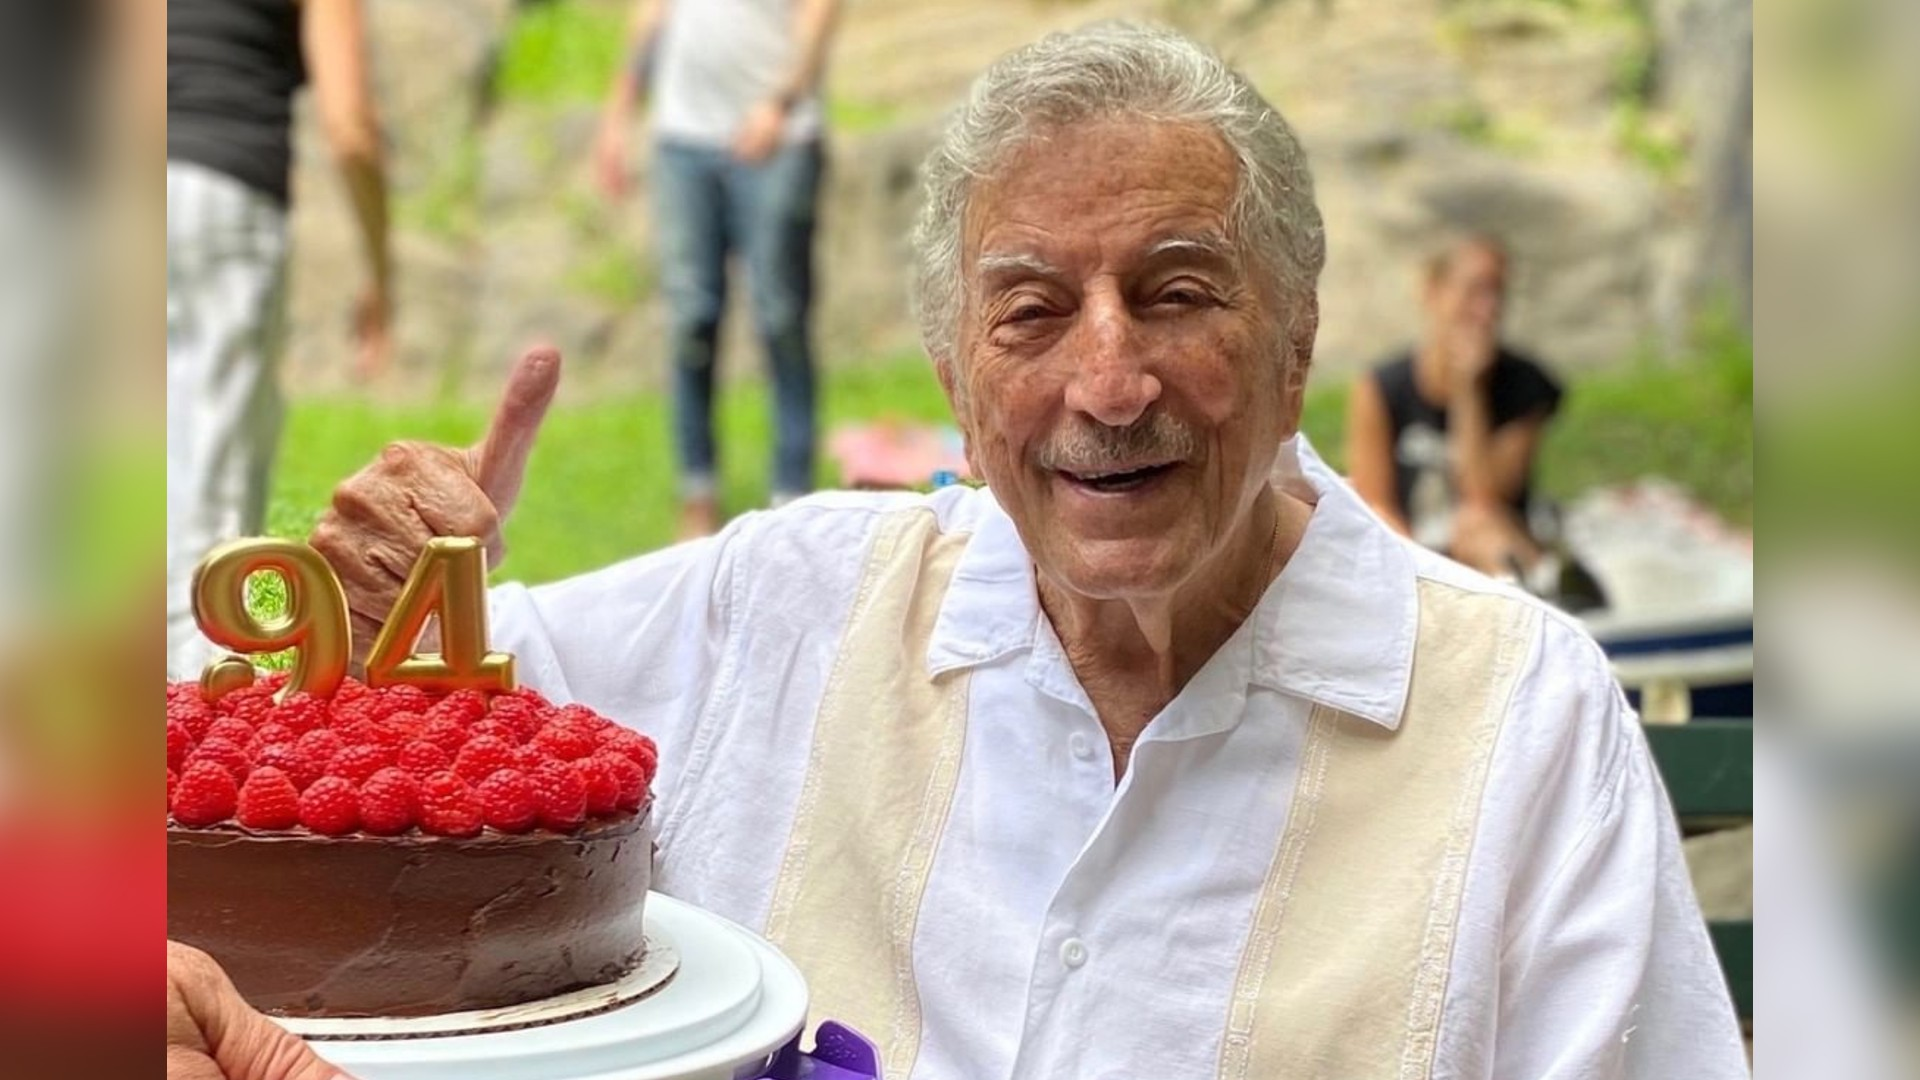 Tony Bennett Celebrated His 94th Birthday With Mariachis (WATCH)